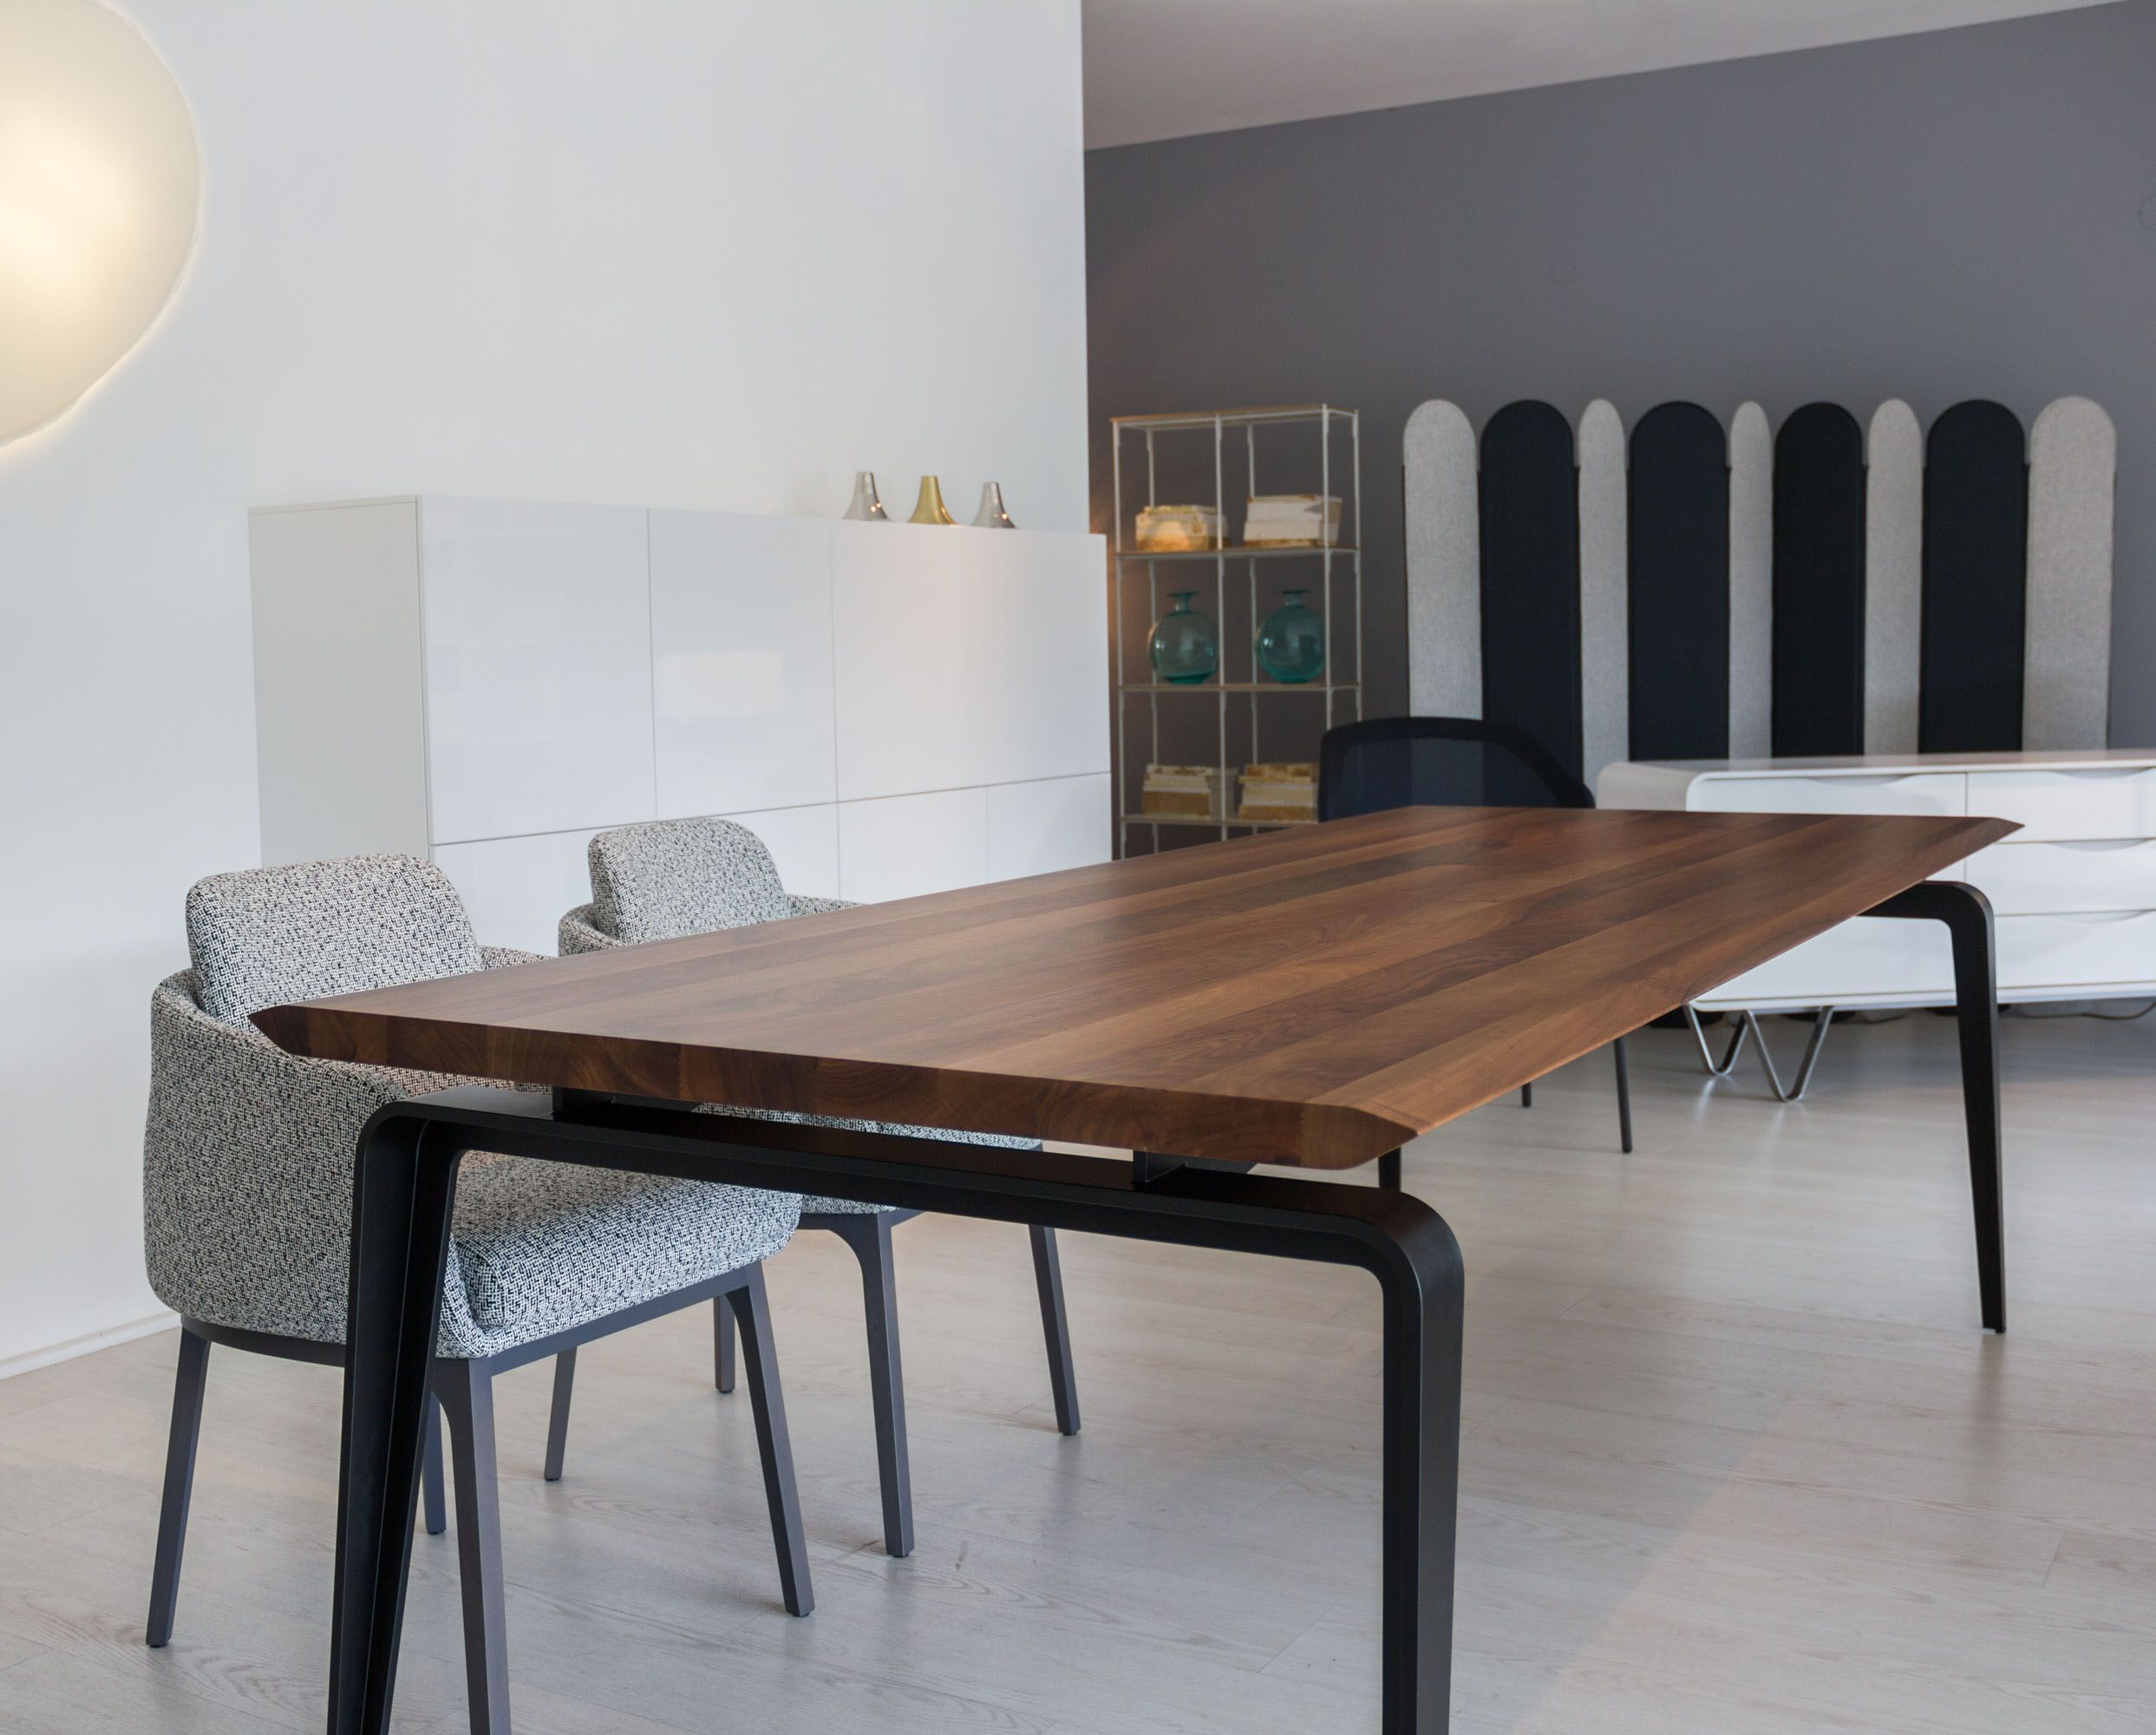 Odessa Rectangular Dining Table Designed By Mauro Lipparini